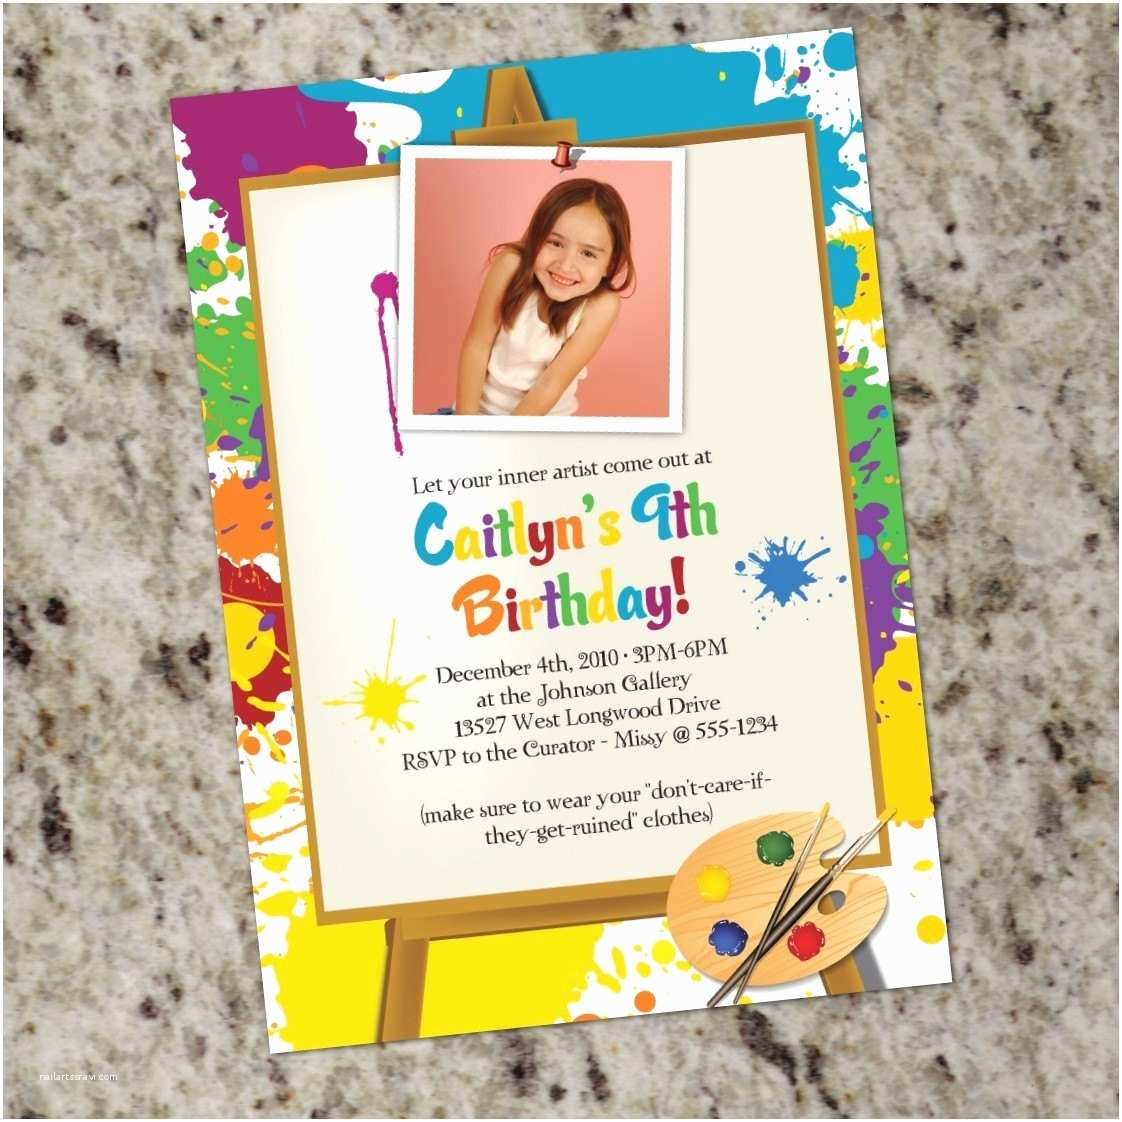 Paint Party Invitations Little Artist Art Painting Birthday Party Invitations